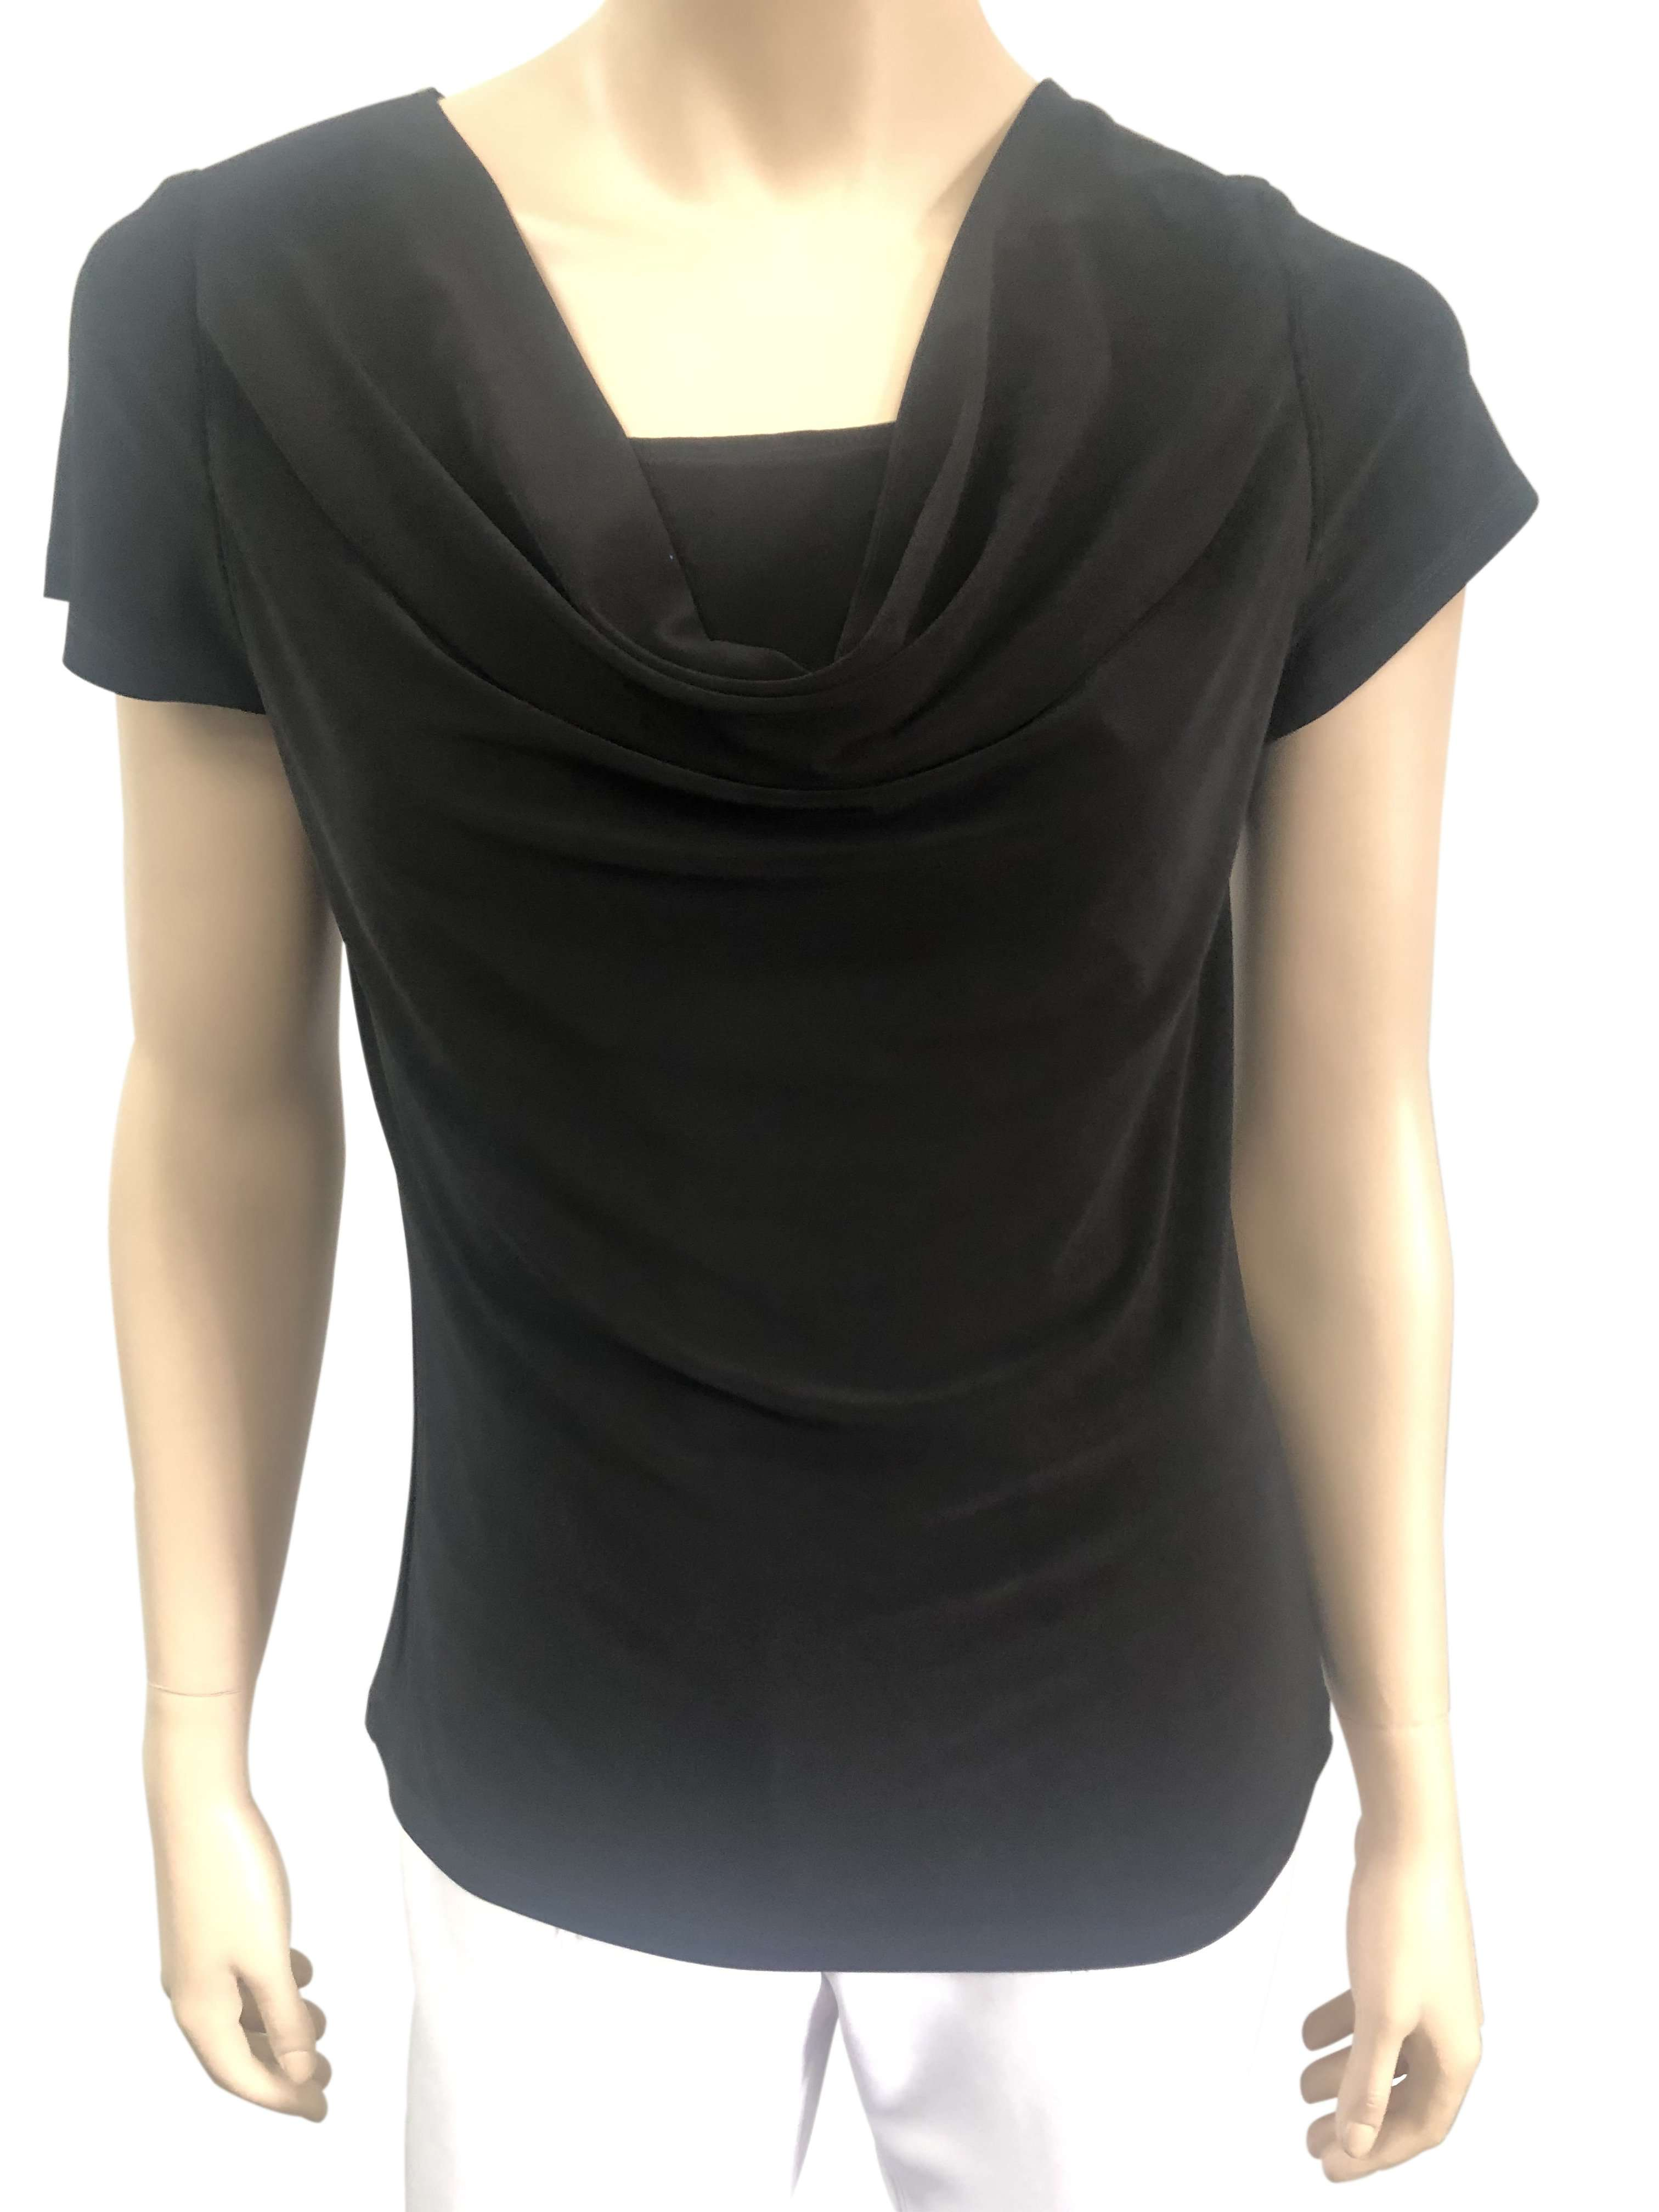 Women's Tops on Sale Black Draped Neck Top - Made in Canada - Yvonne Marie - Yvonne Marie